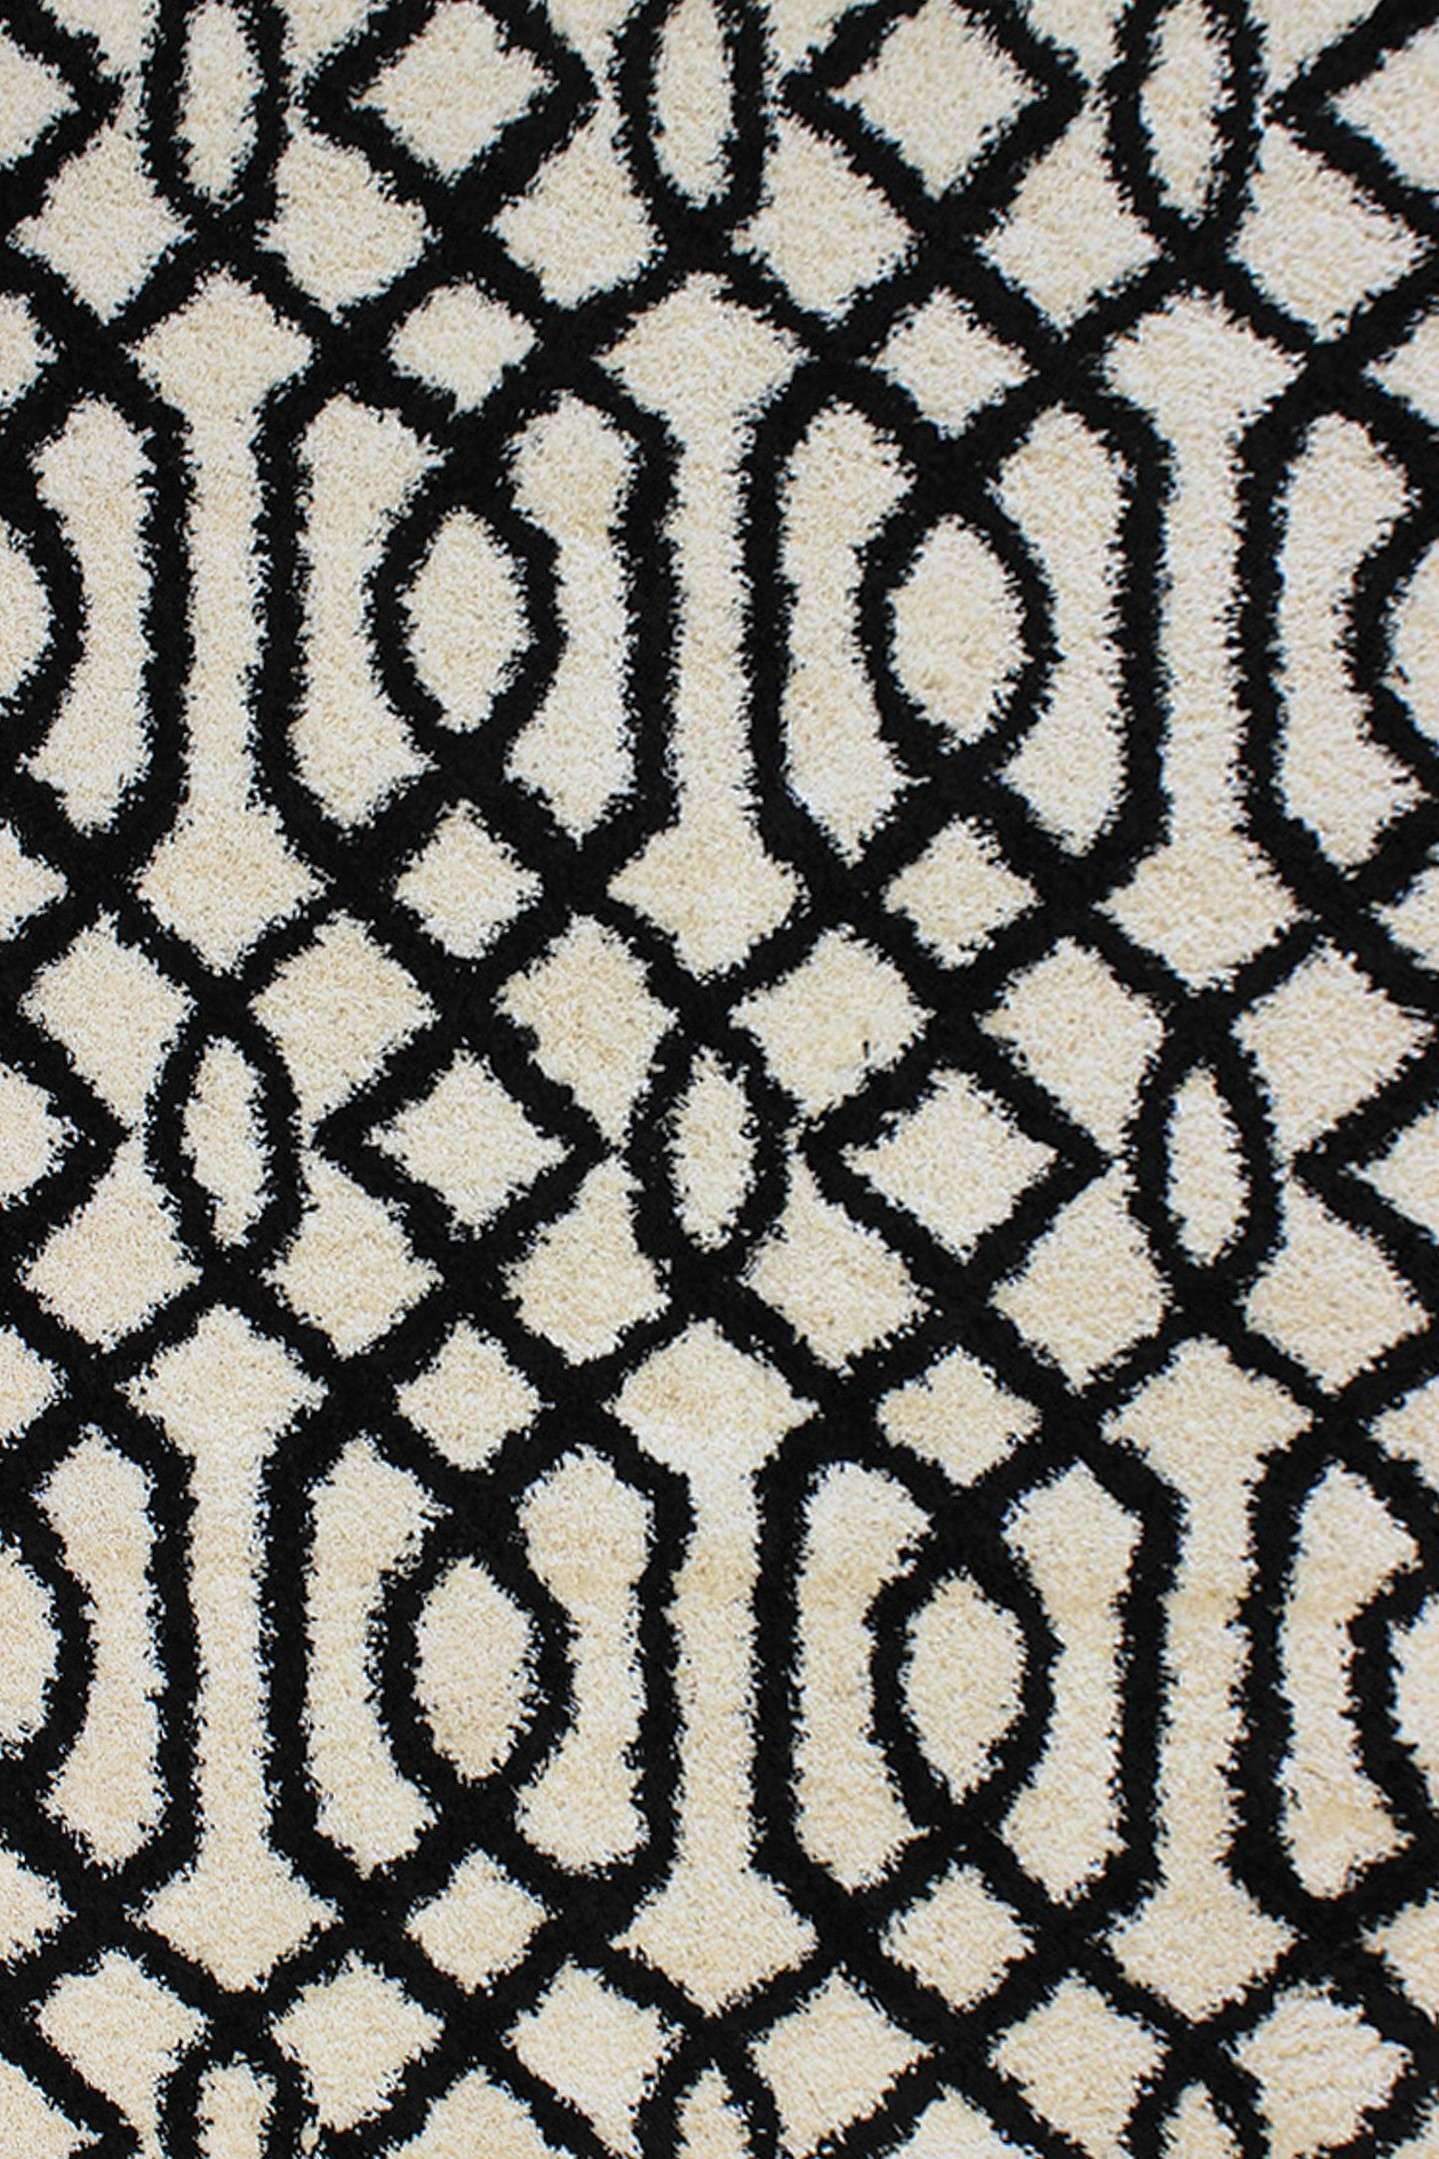 Dynamic Rugs Passion Geometric Ivory 6203 Area Rug